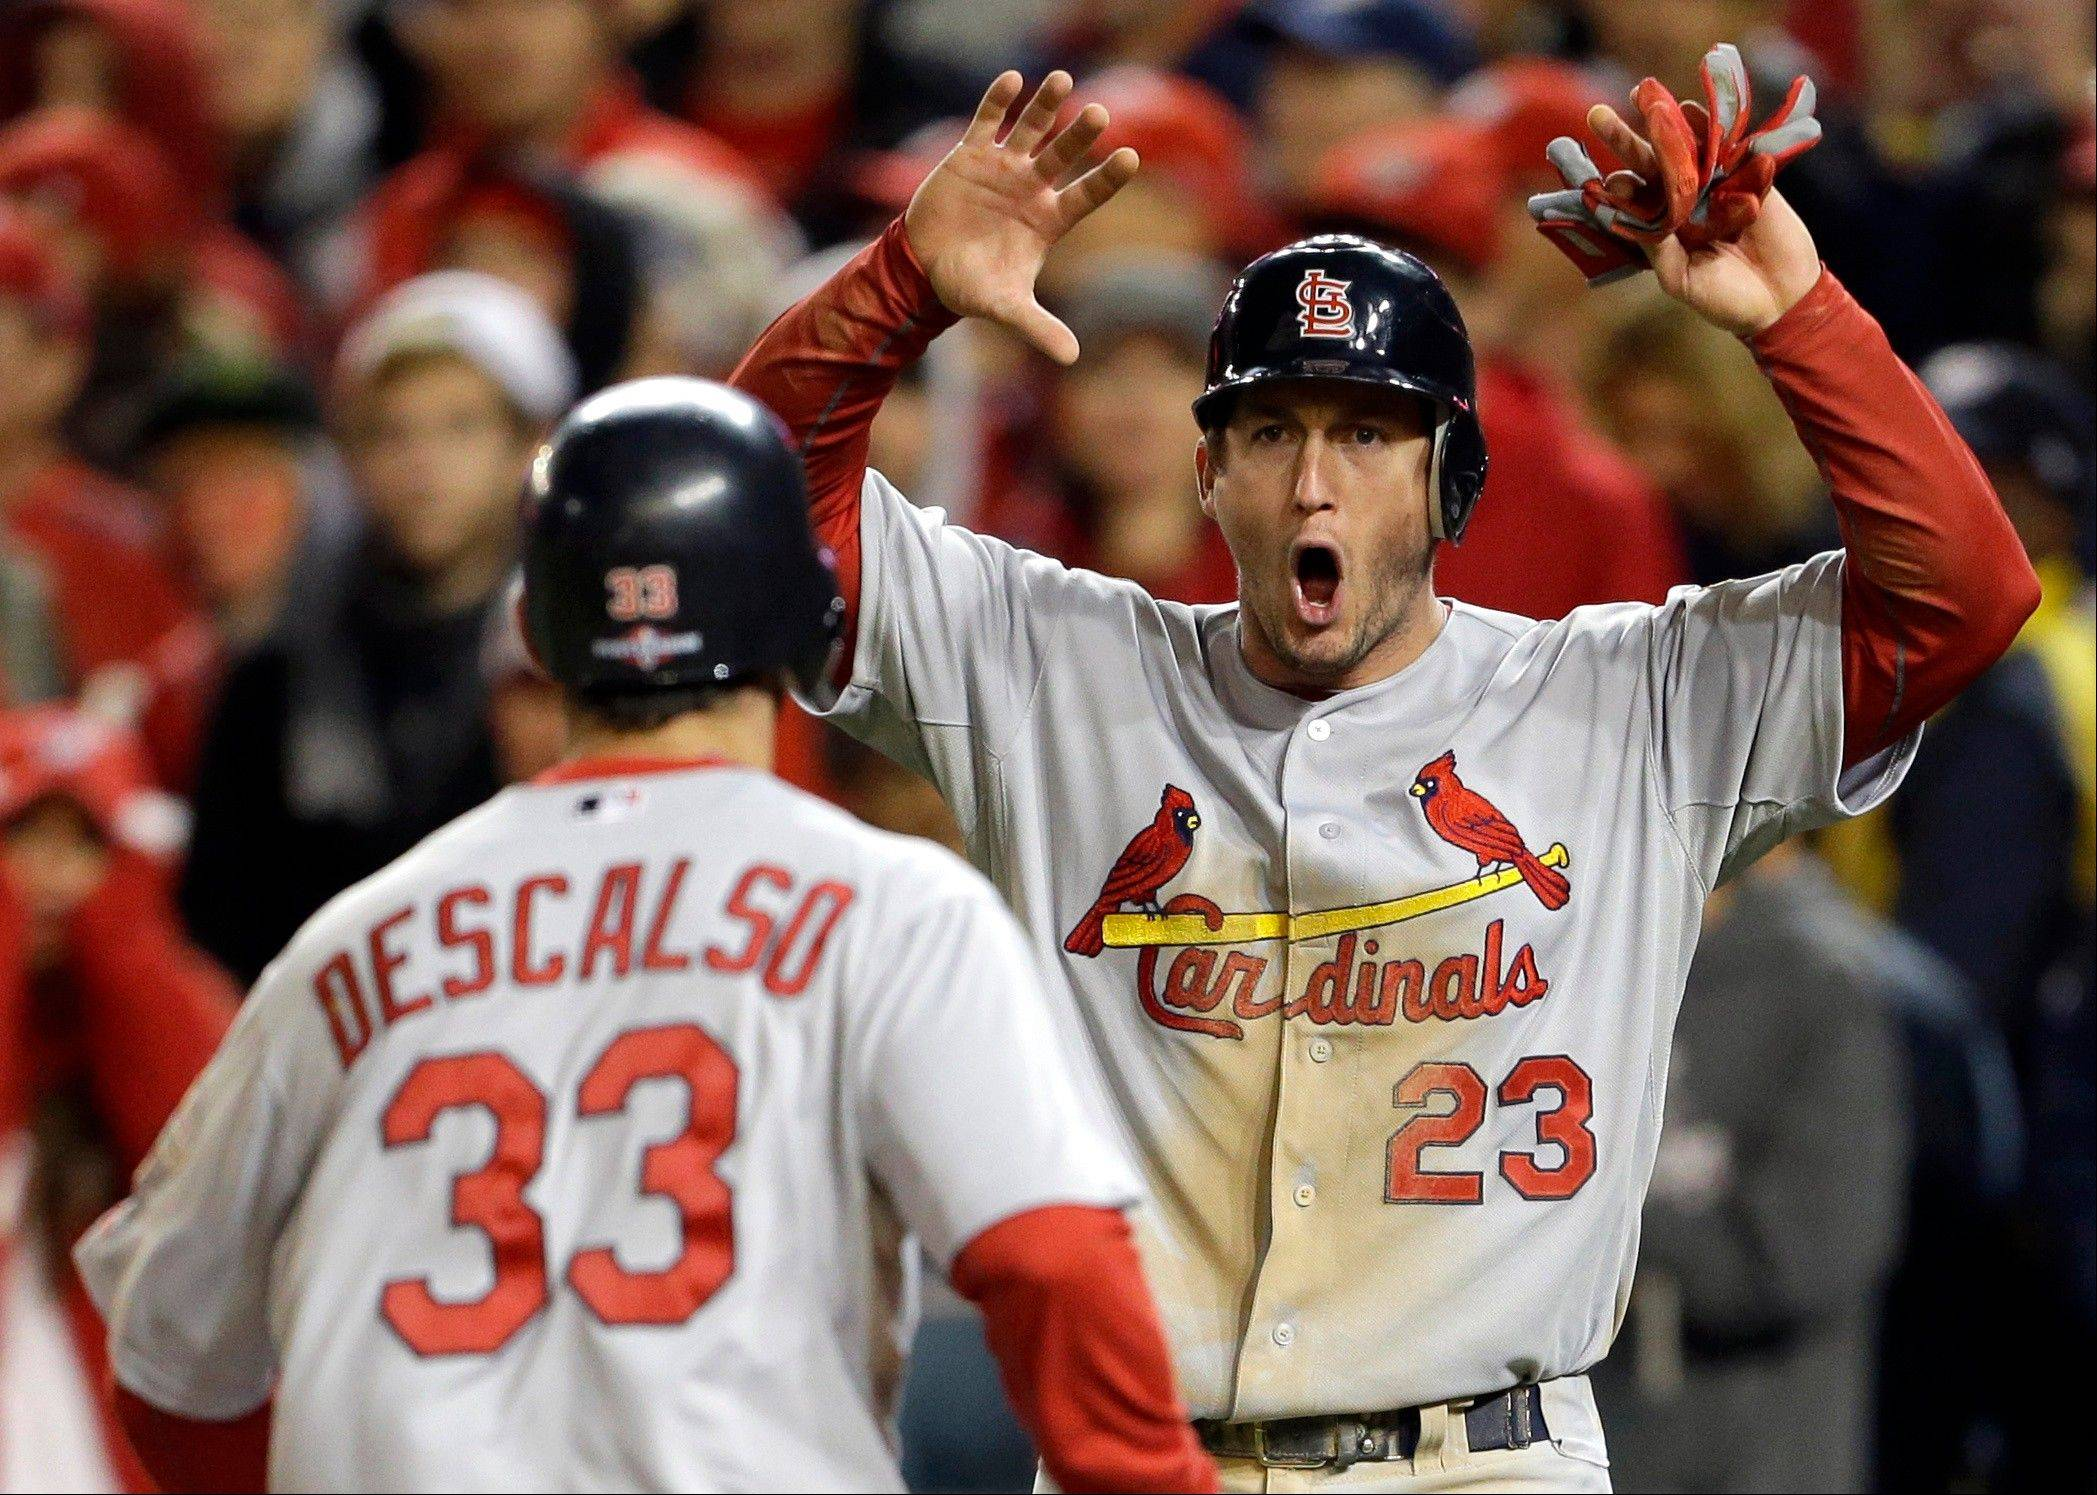 The Cardinals' David Freese, right, gives a yell as he and Daniel Descalso score on a single by Pete Kozma in the ninth inning of Game 5 of the National League division series in Washington.